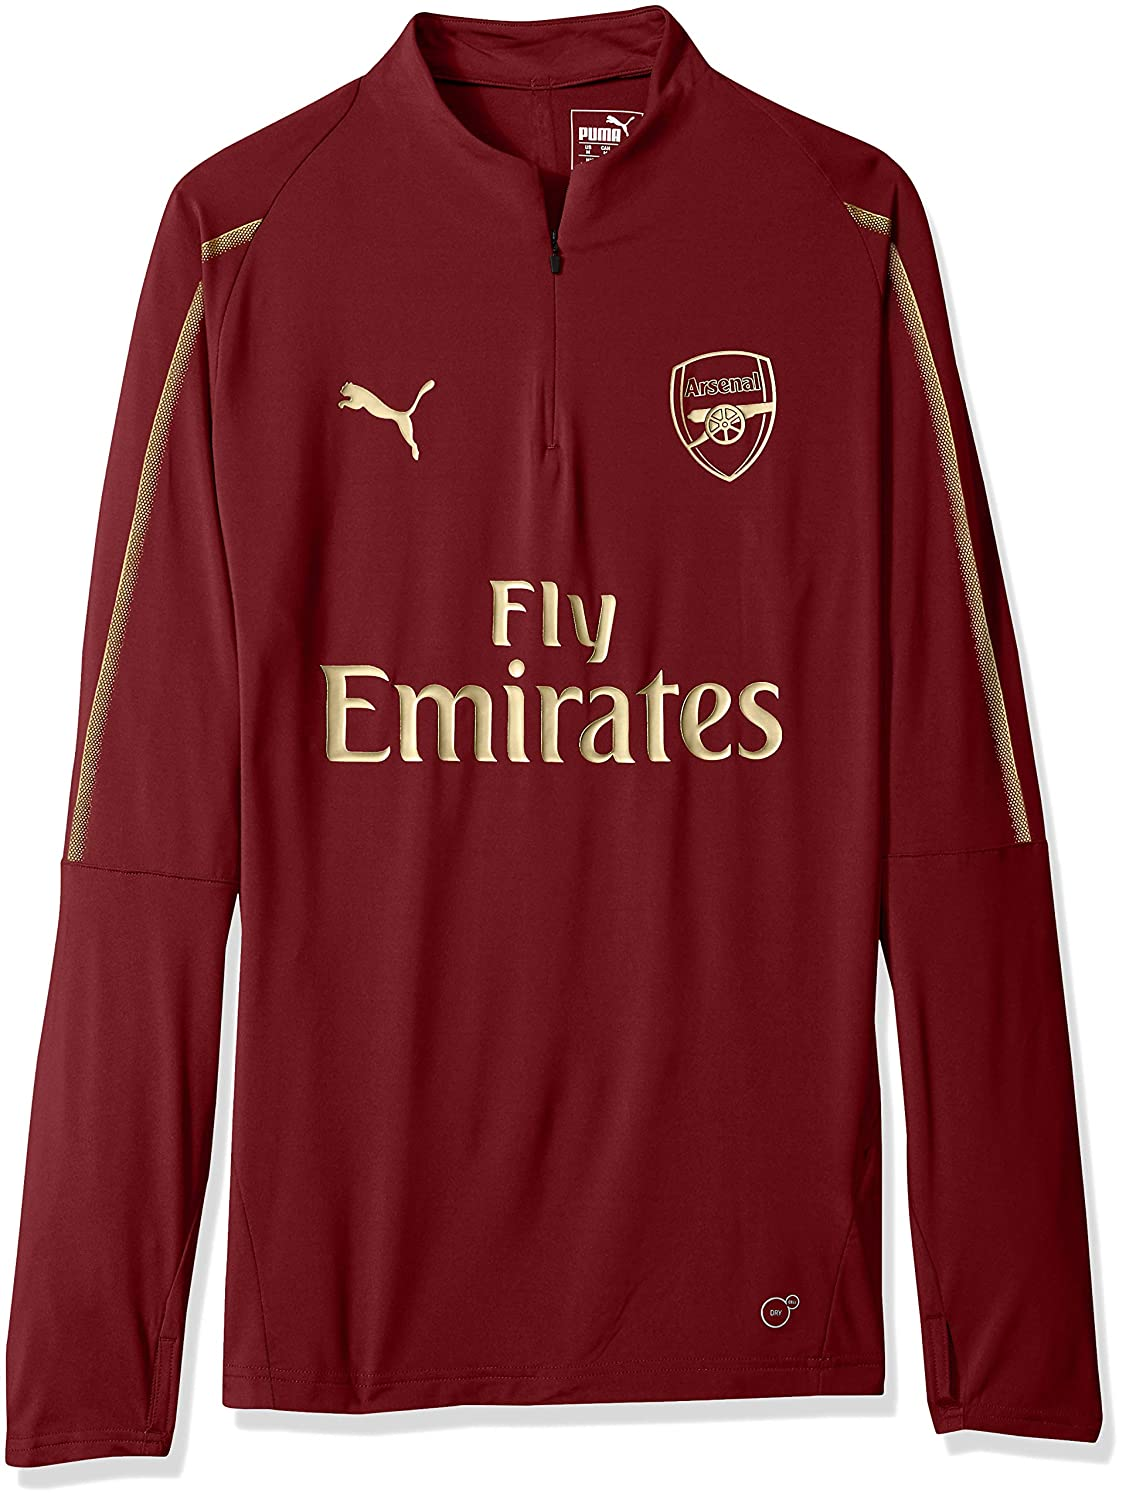 d7c4d384a18 PUMA Men s Arsenal Fc 1 4 Top with Zipped Pocket at Amazon Men s Clothing  store